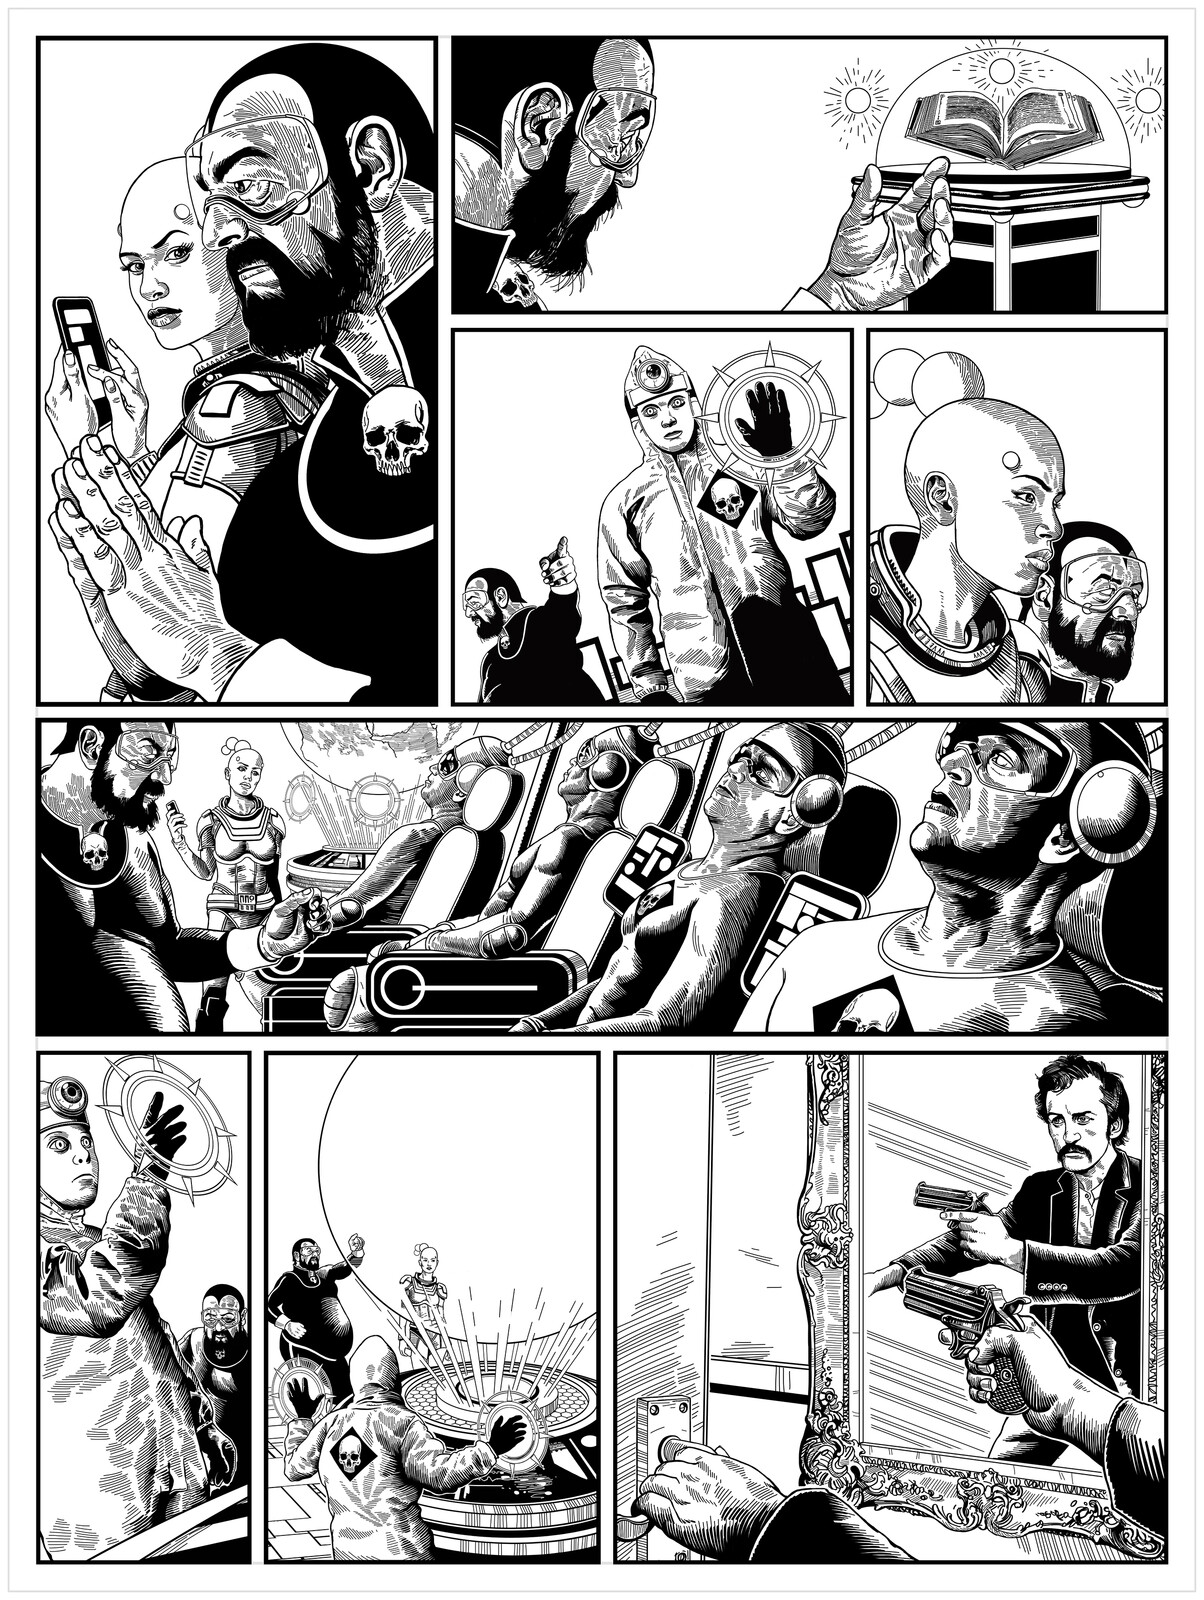 Page 2 The Collector / Issue 2 of The 77 B&W